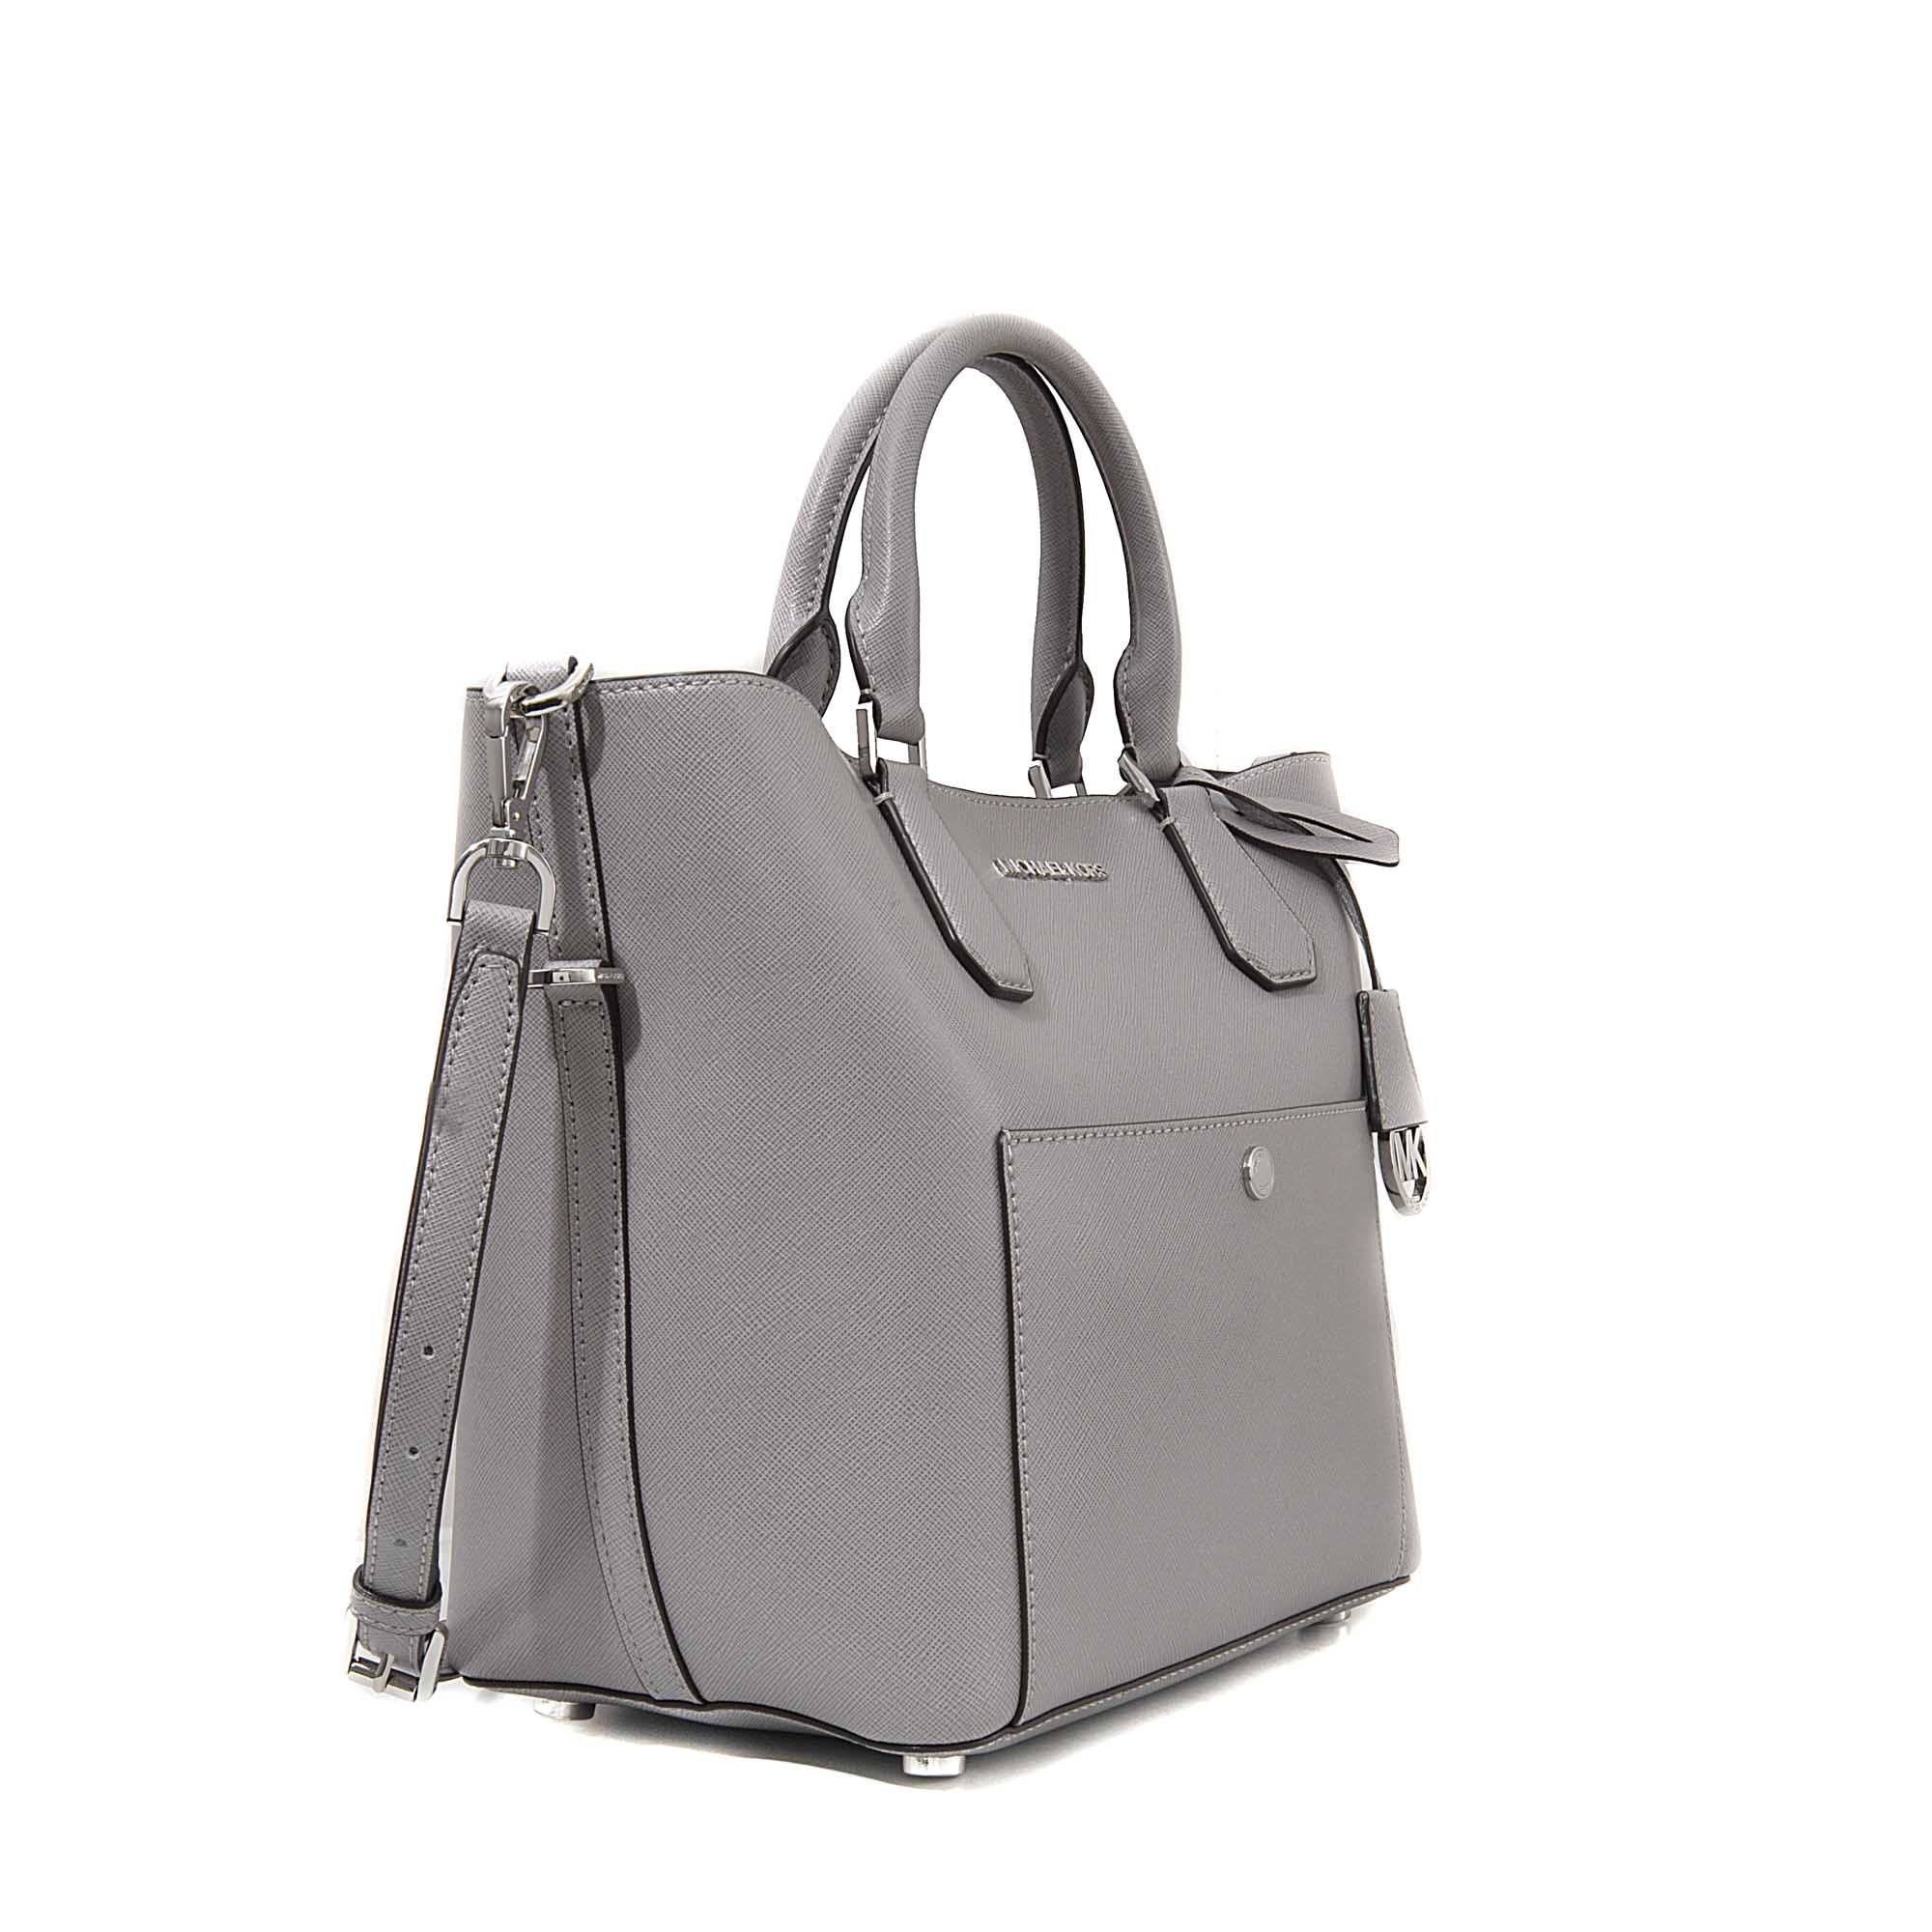 a62ef692dbbf47 ... Michael kors Greenwich Lg Grab Bag in Gray Lyst MICHAEL Michael Kors  Greenwich Large Saffiano ...